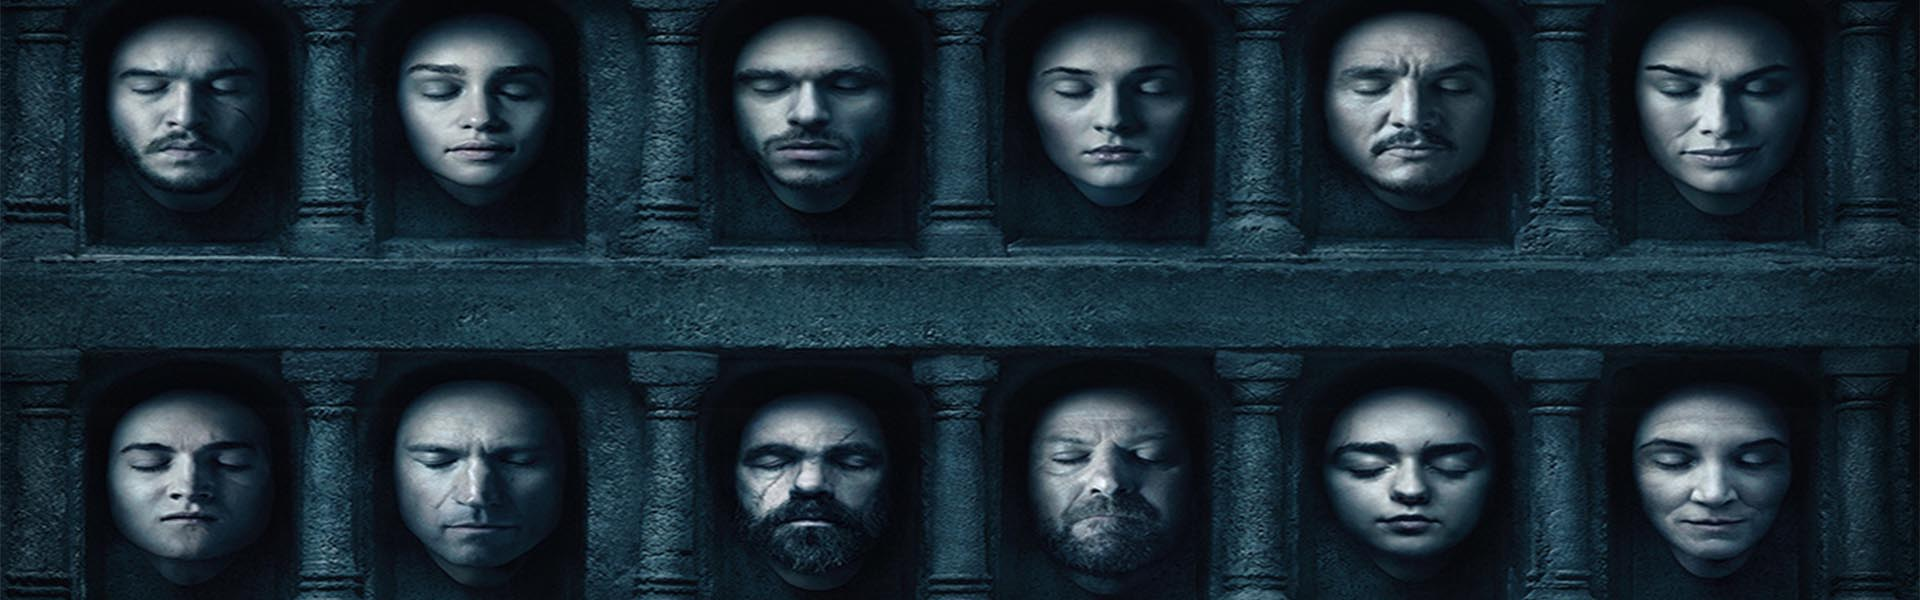 Nation - 10 curiosidades que probablemente no sabías de Game Of Thrones